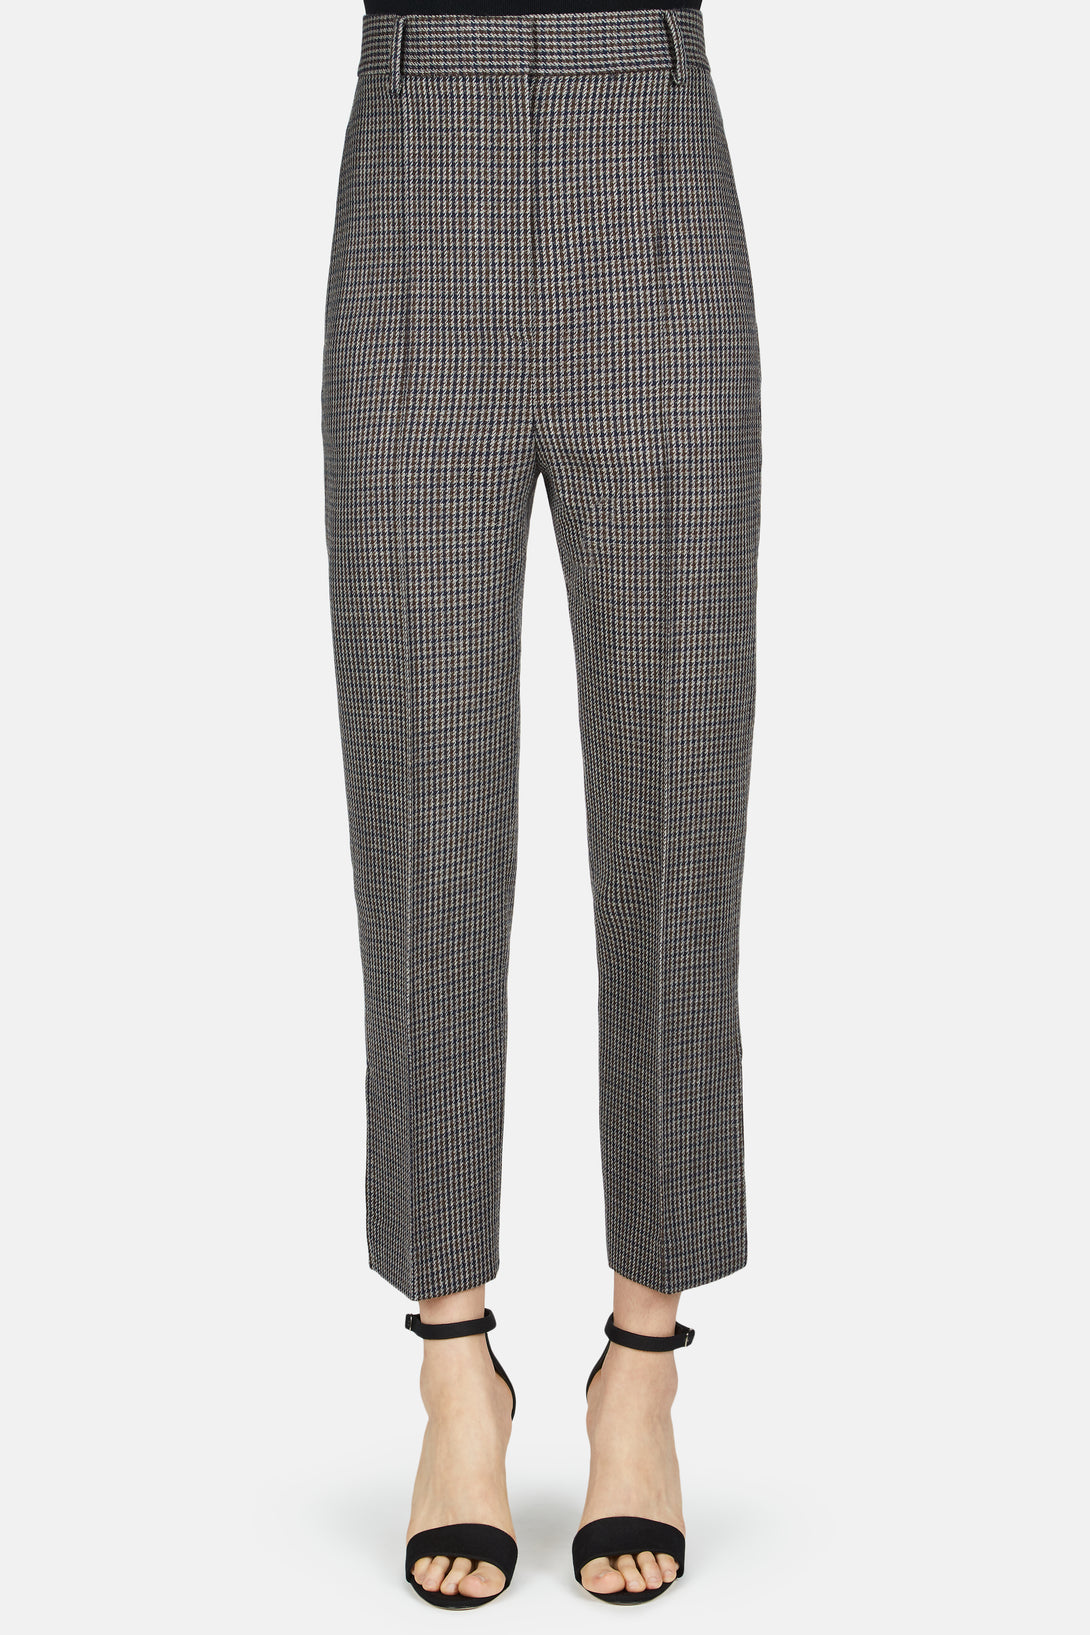 Kyle Slim Fit Pant - Brown Tweed